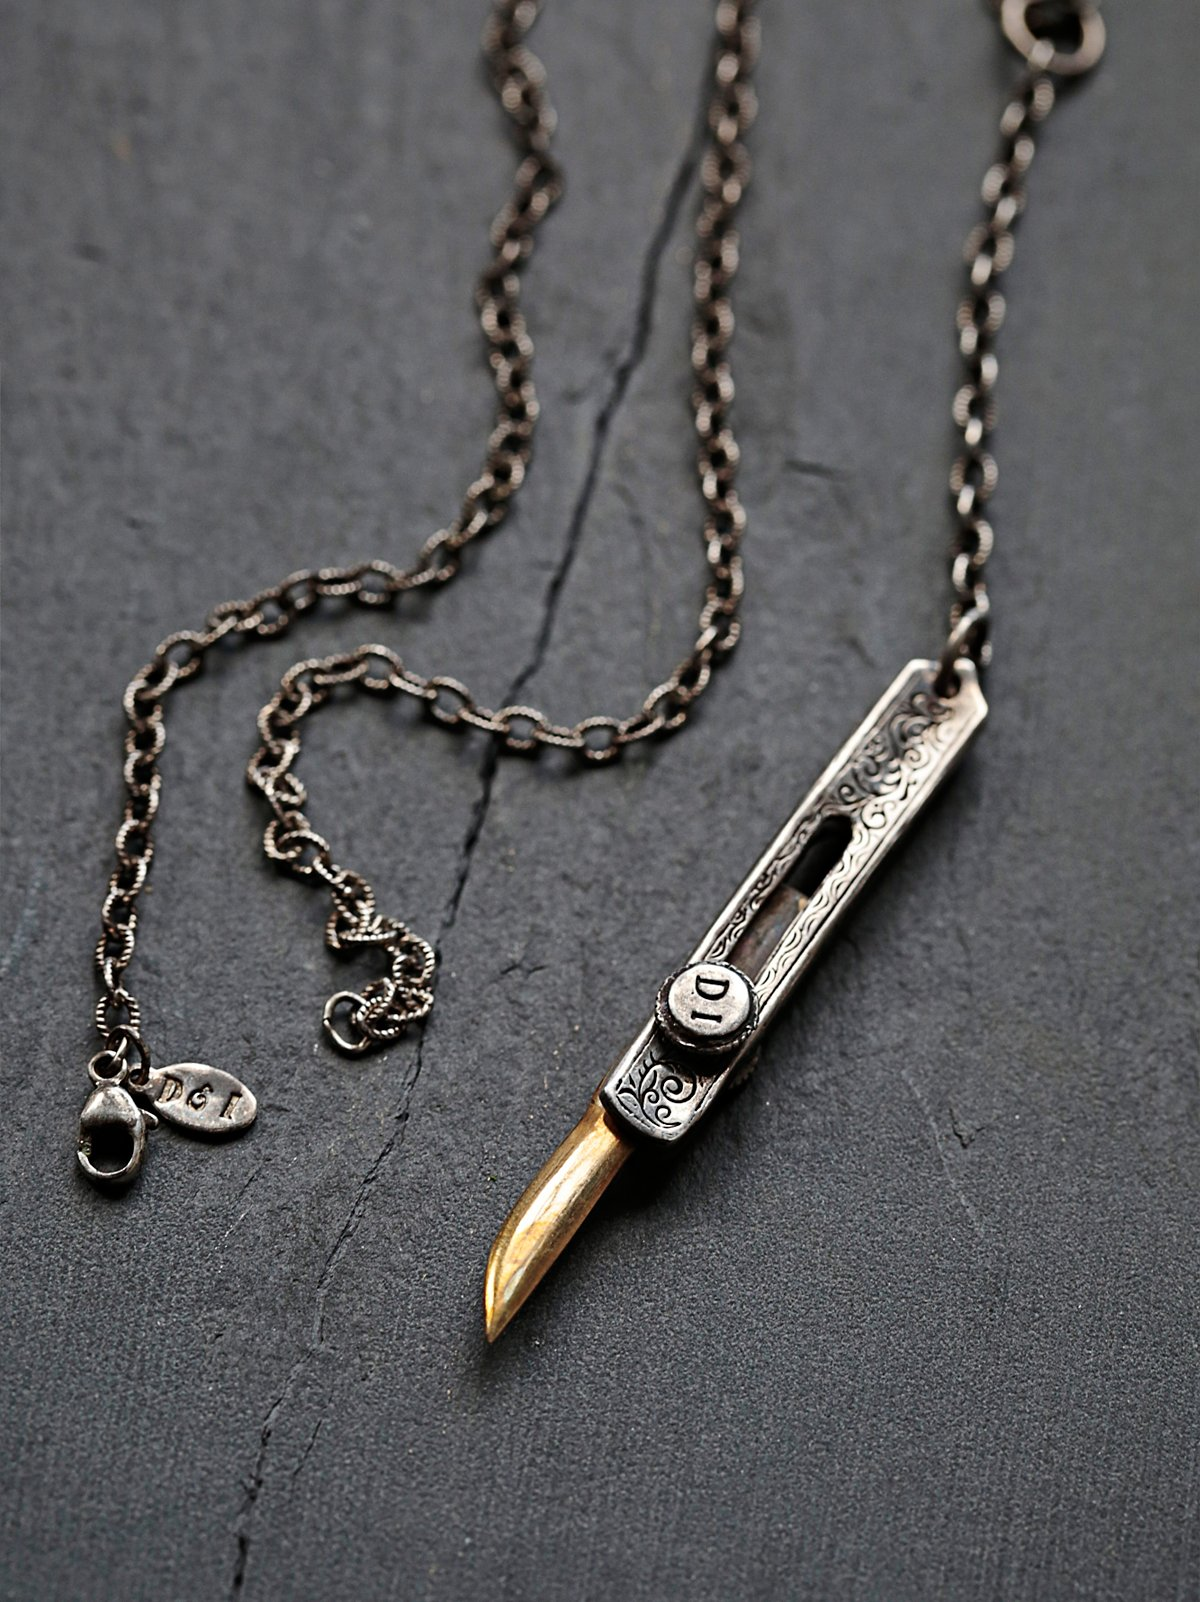 Filigreed Knife Necklace